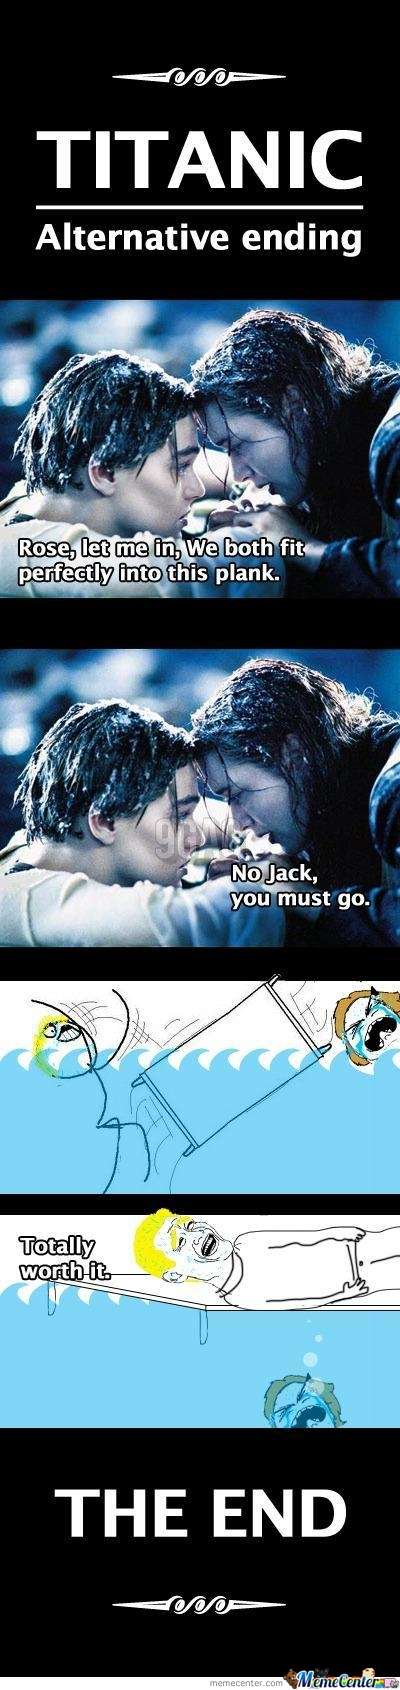 Titanic Alternate Ending